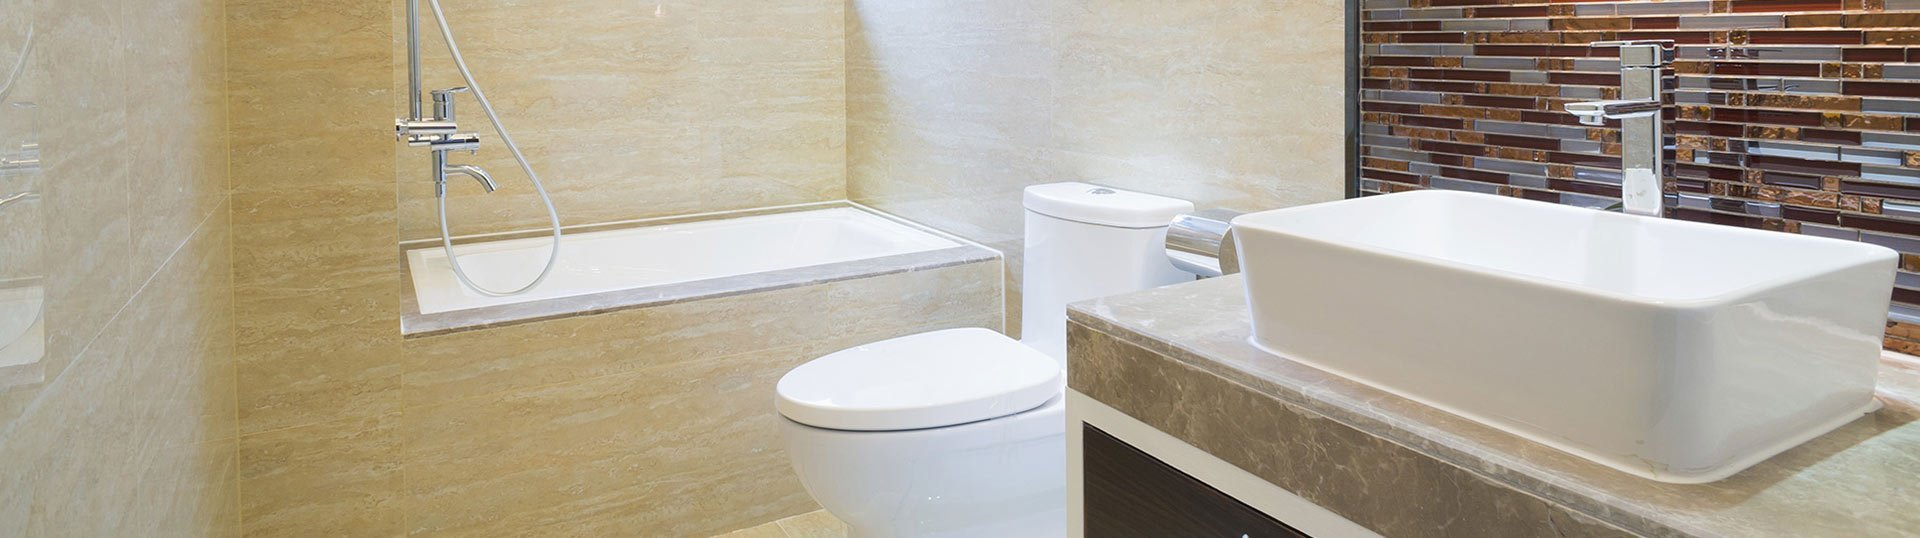 small bathroom renovations Perth | Budget Bathrooms Perth